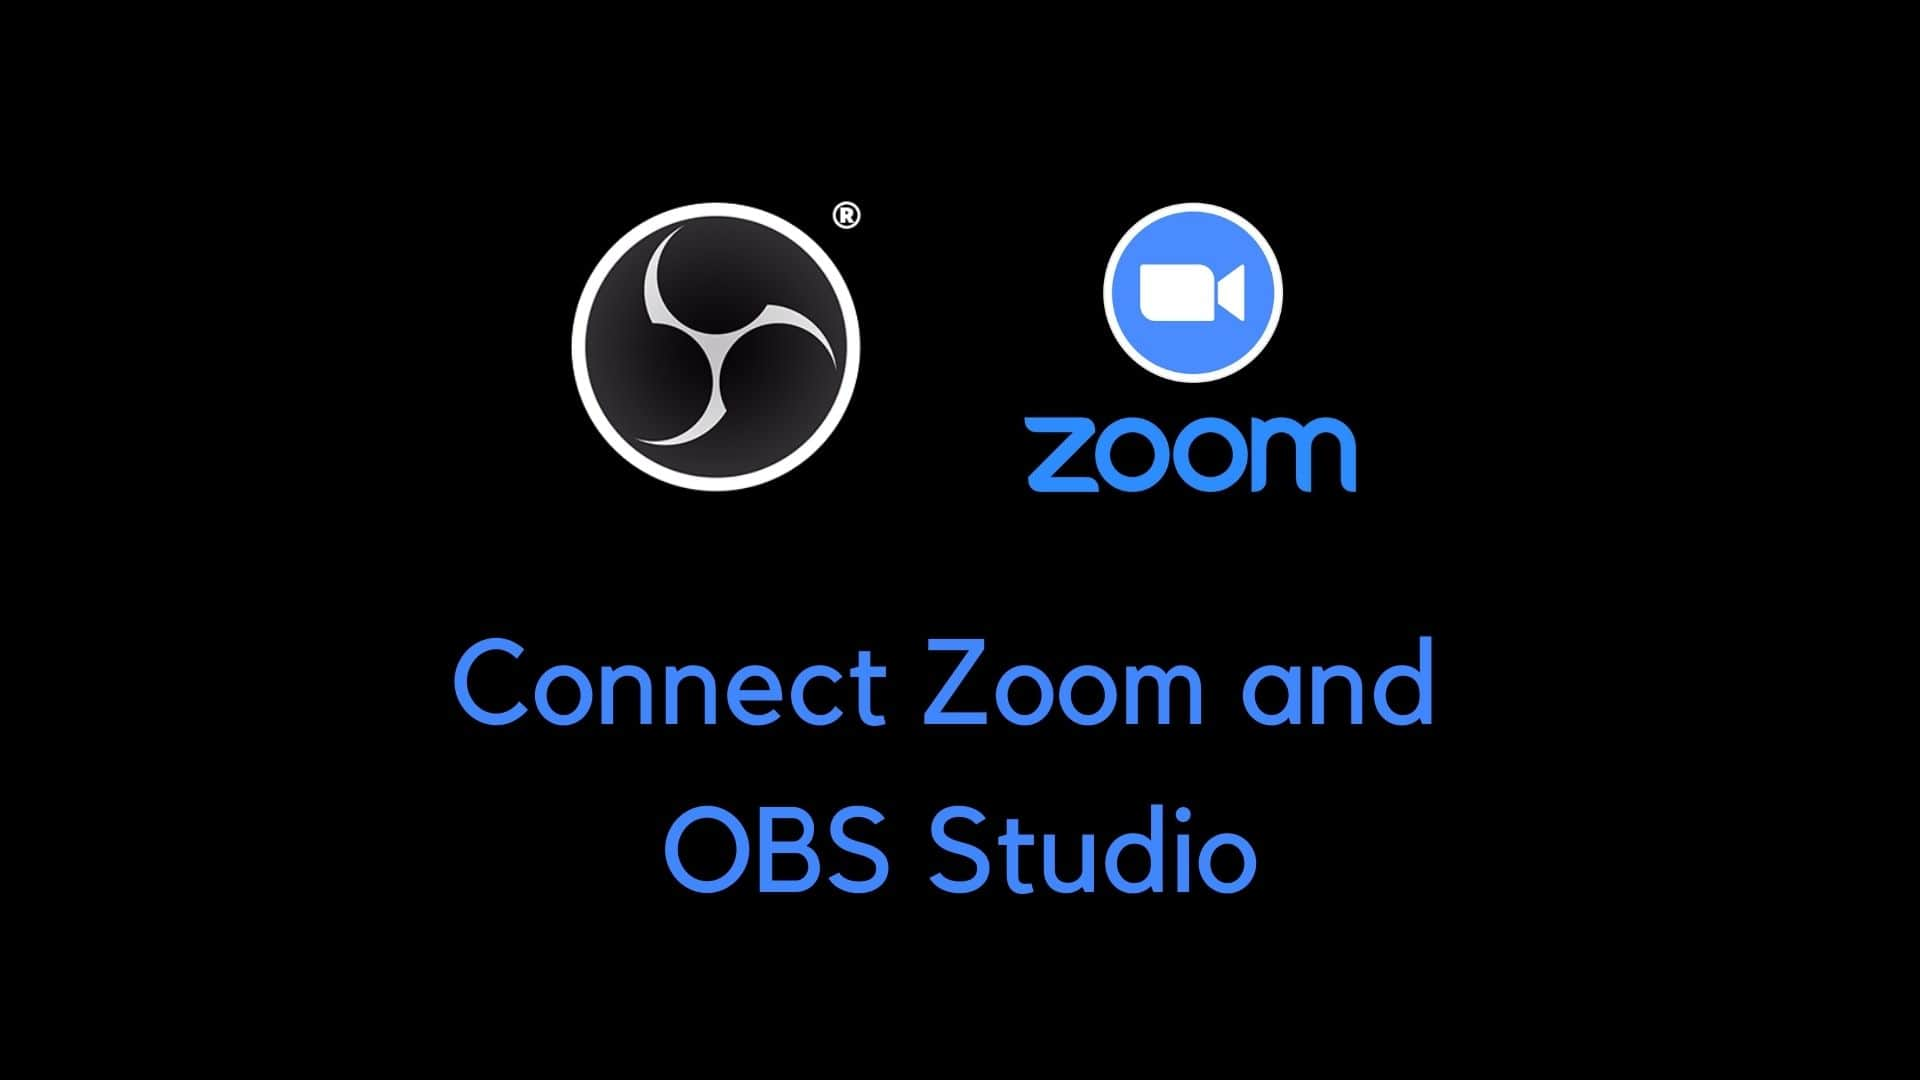 Live Streaming and Recording Zoom With OBS Studio Simplified